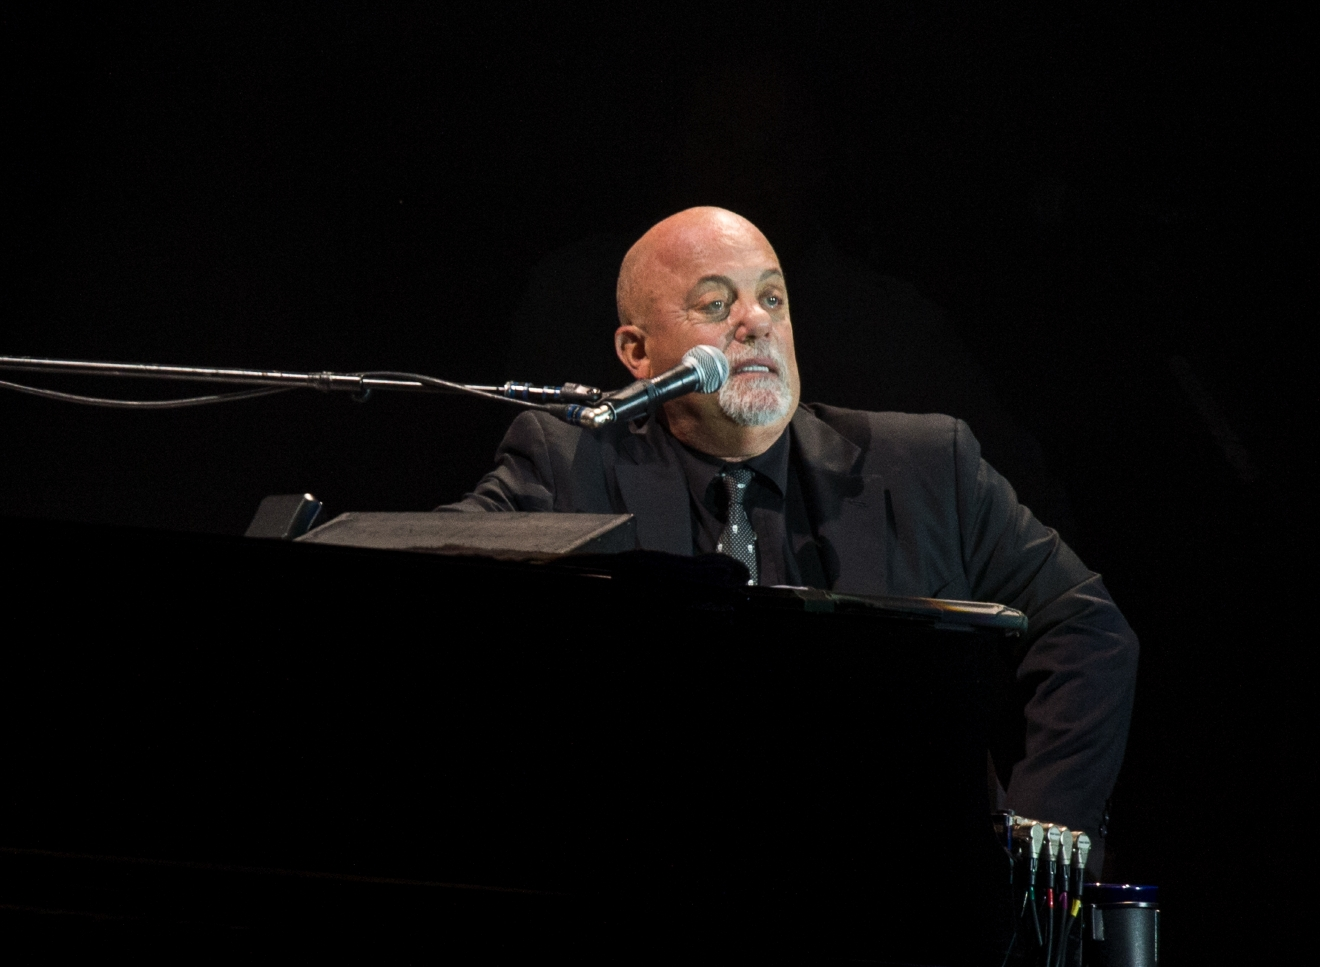 Billy Joel performs at Wembley Stadium in London, Sept. 10, 2016. (Alan West/WENN.com)